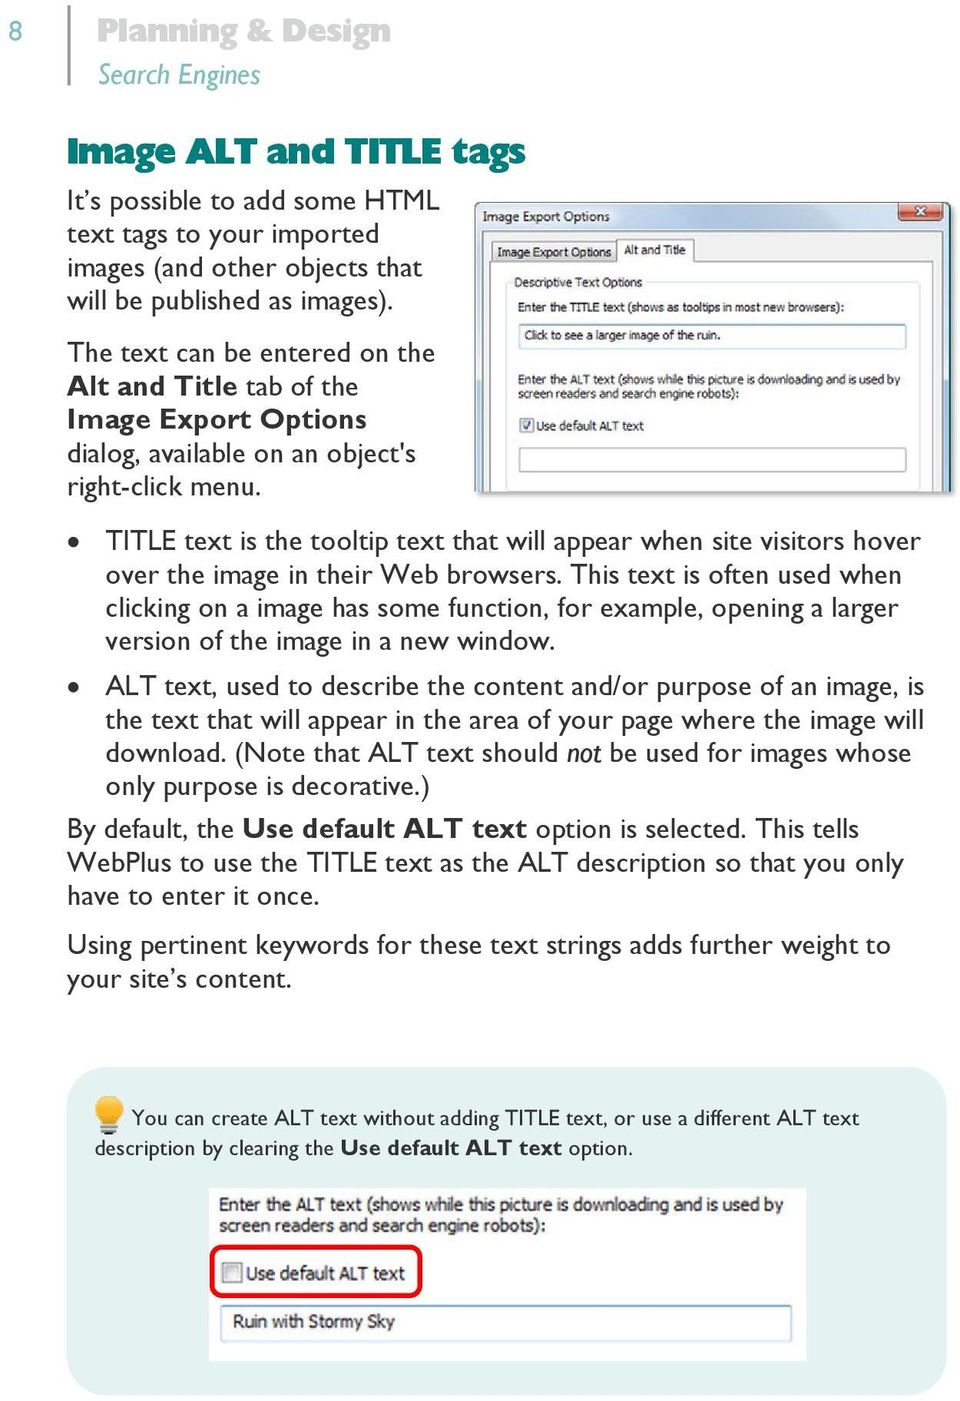 TITLE text is the tooltip text that will appear when site visitors hover over the image in their Web browsers.